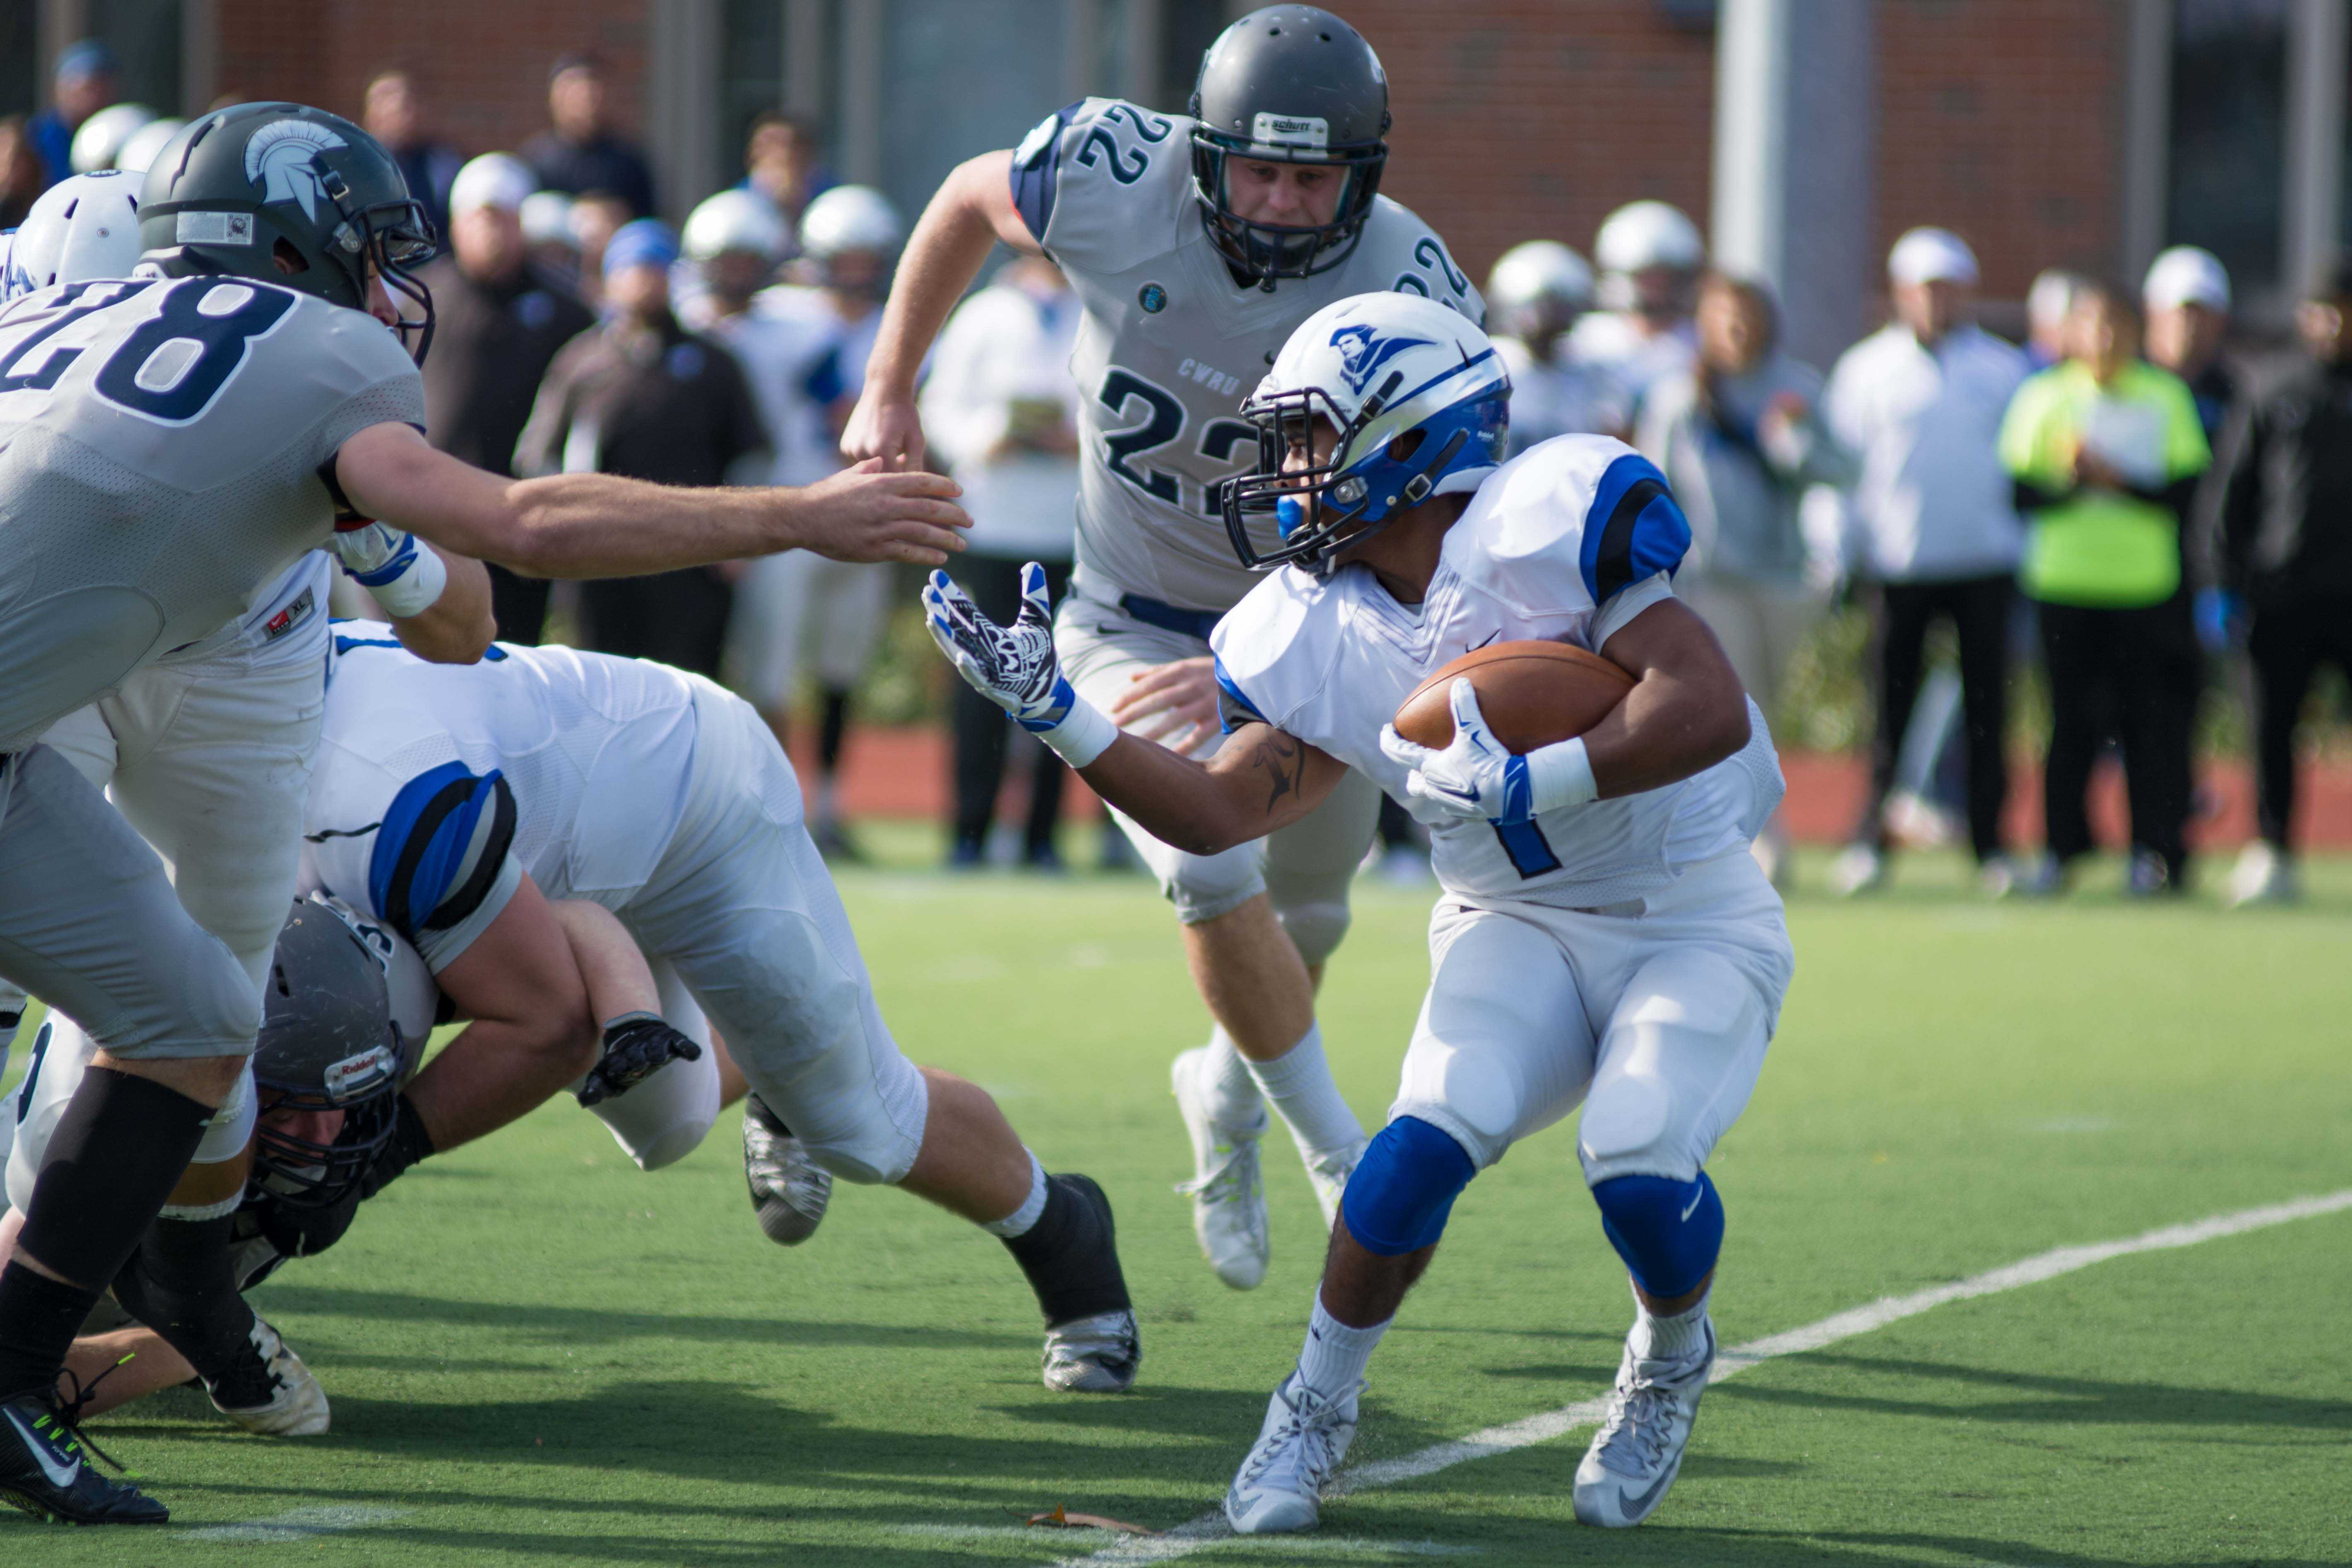 Spartan defender attempts to stop the Thomas More ball carrier.